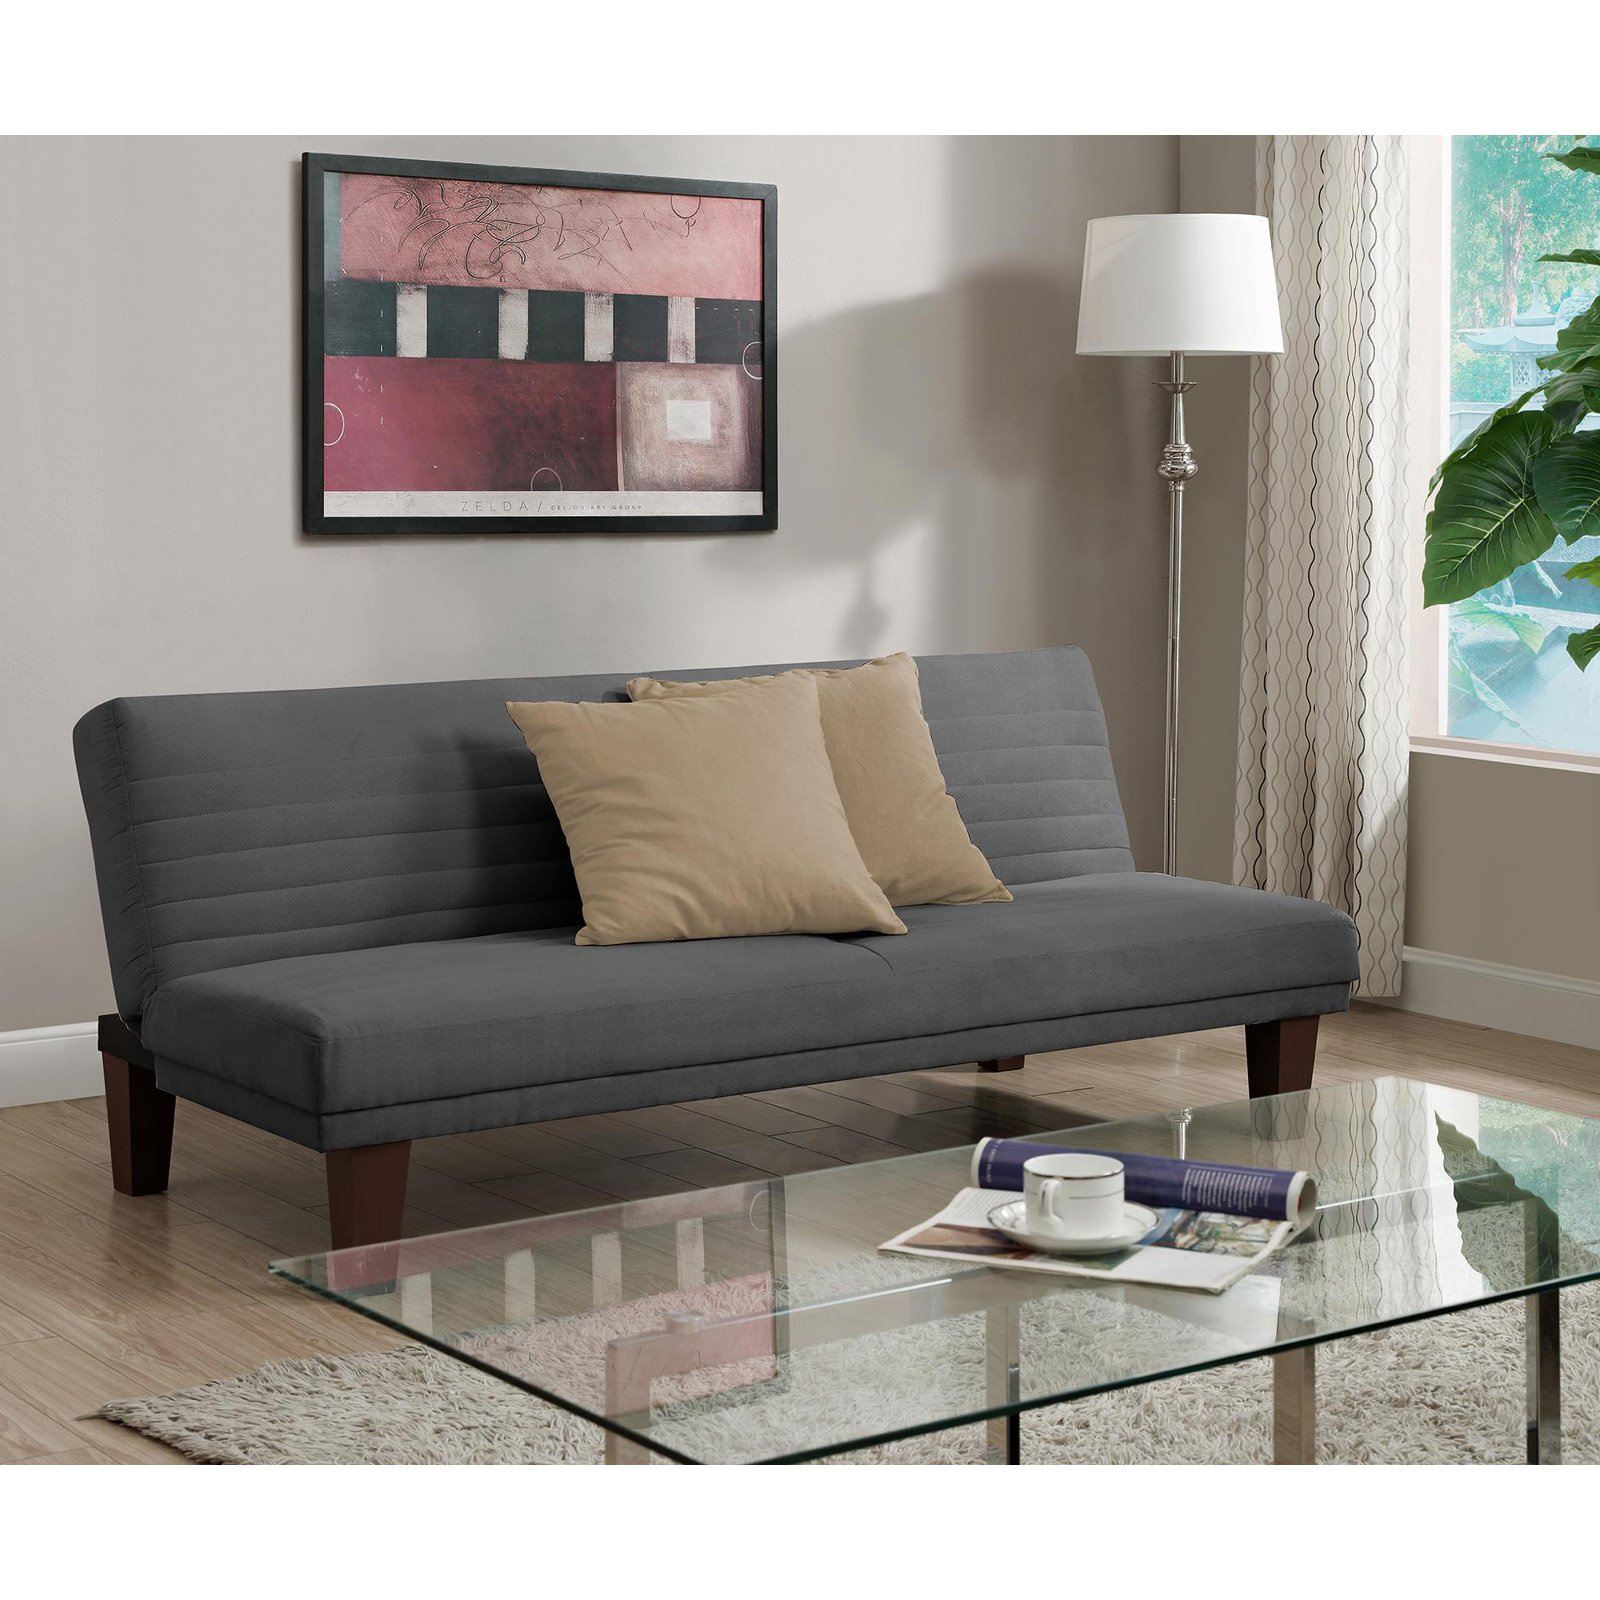 DHP Dillan Convertible Futon Couch, Multiple Colors